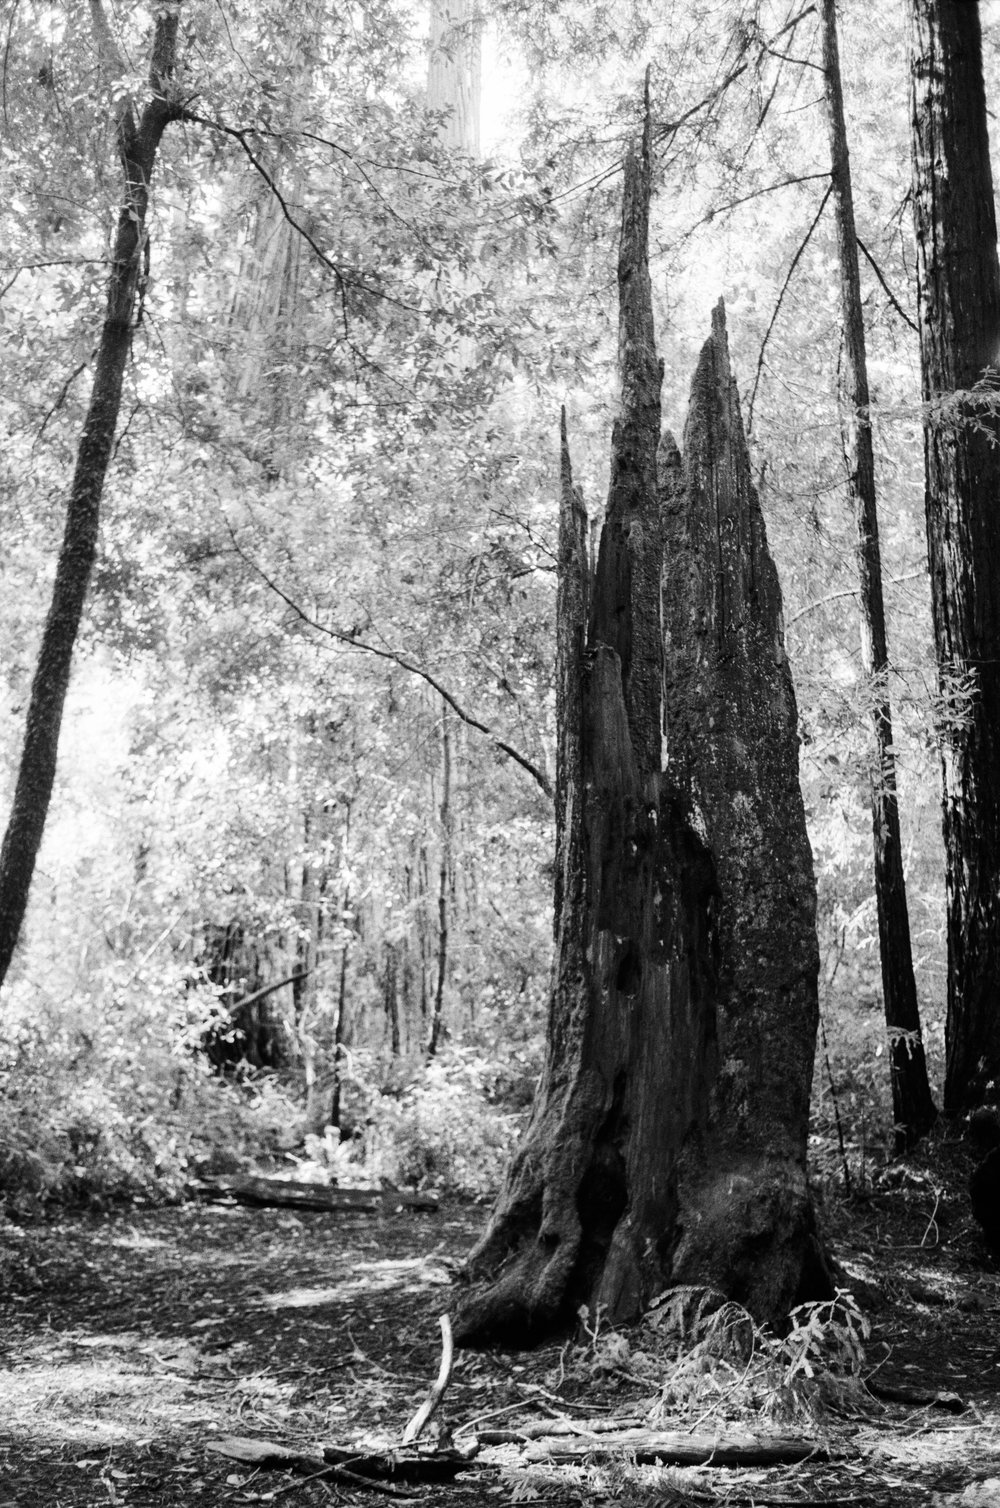 Big Basin - Rebel2000 20-35 - HP5 - 1 of 1.jpg